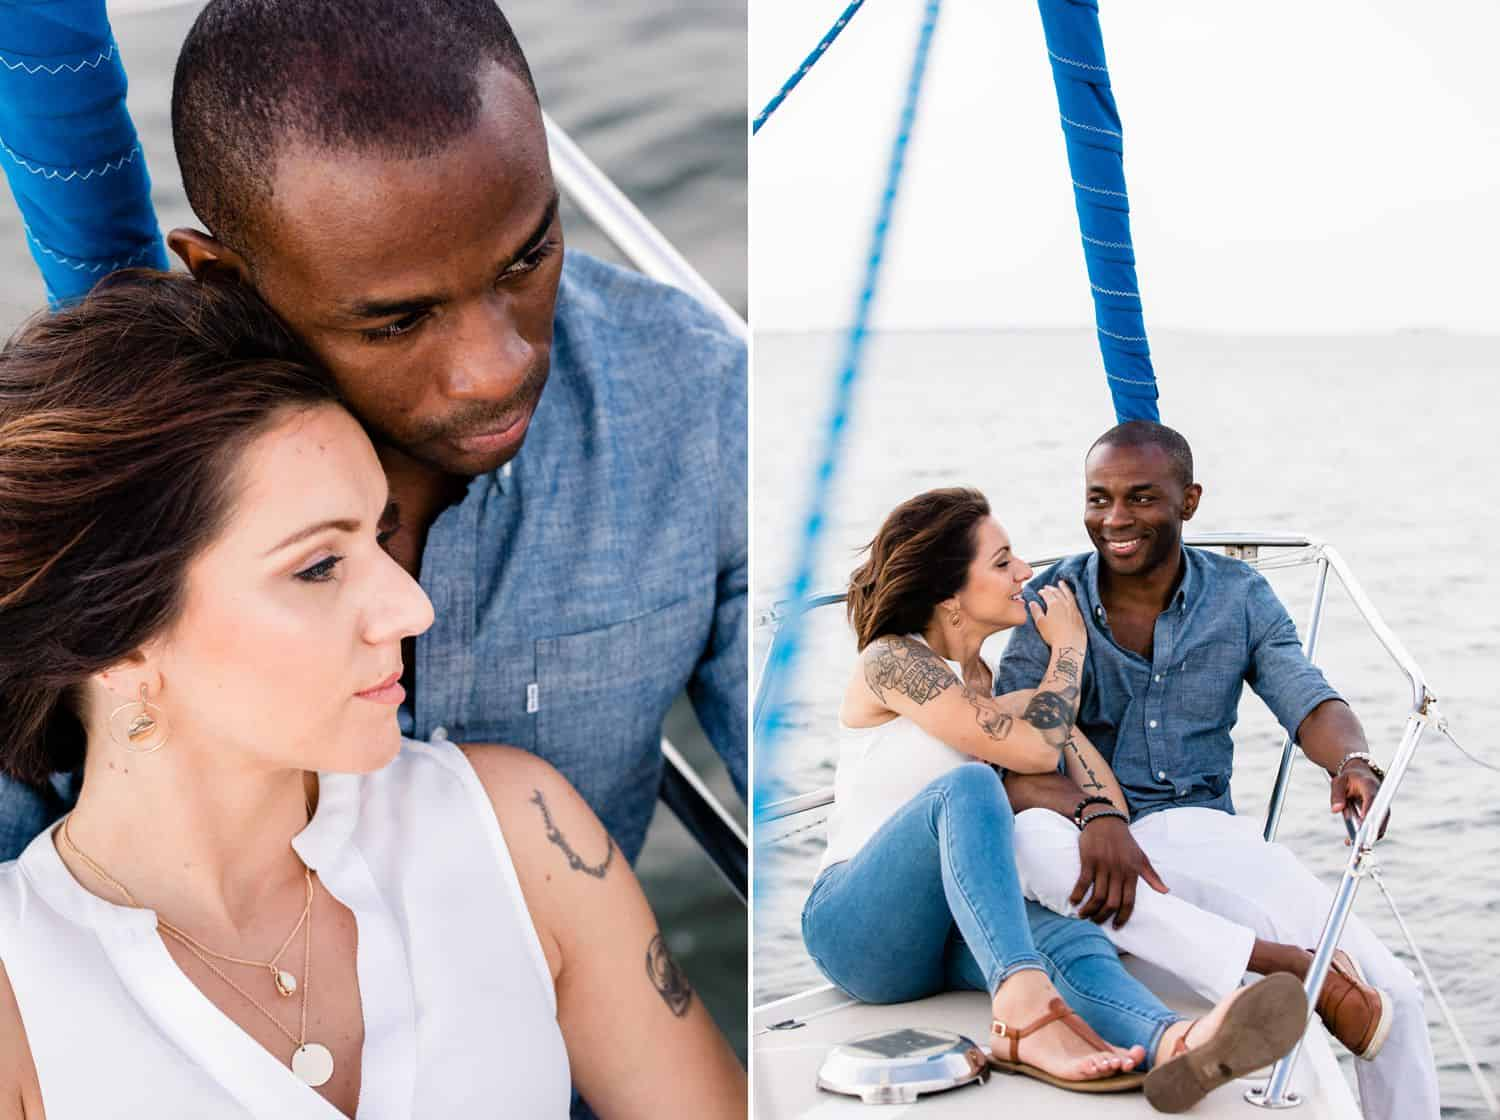 A White woman and a Black man sail on a romantic cruise